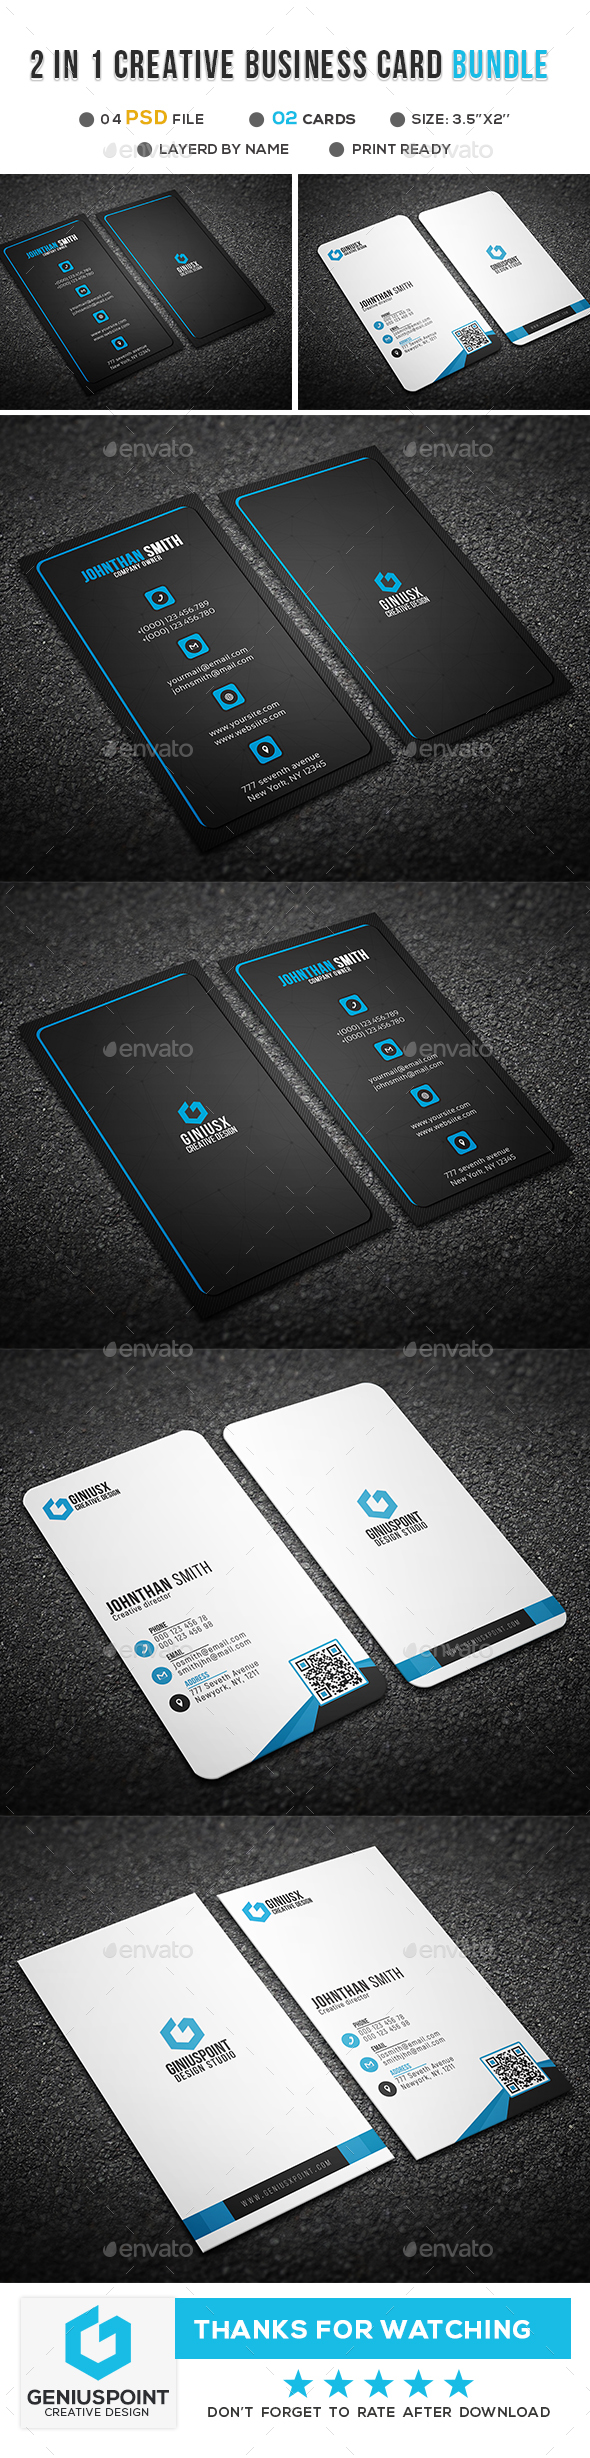 GraphicRiver 2 in 1 Creative Business Card Bundle 21094209